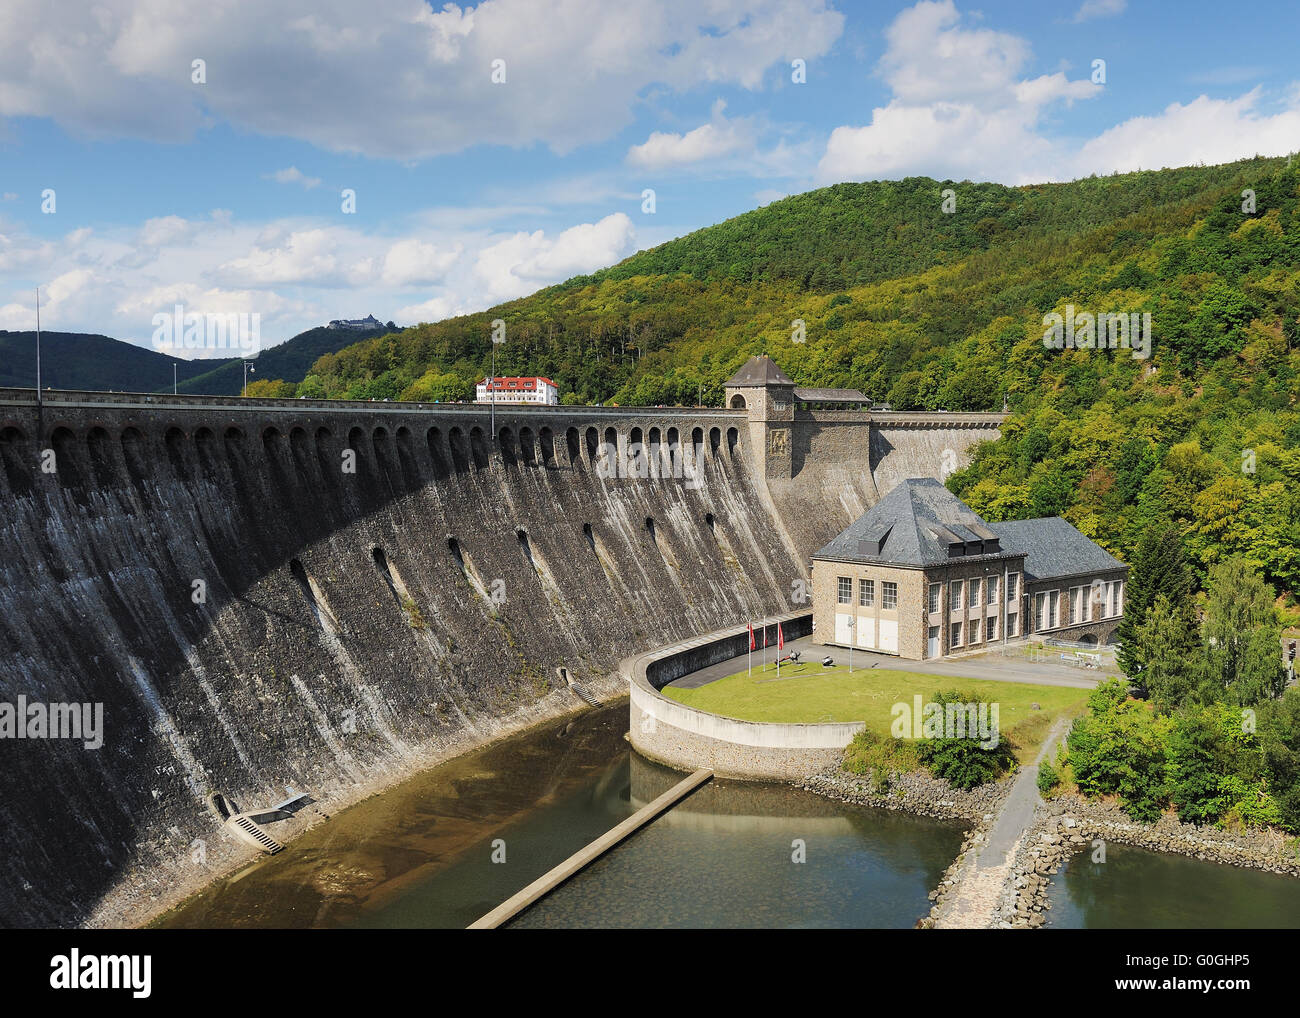 Edersee with hydroelectric power plant and castle waldeck - Stock Image